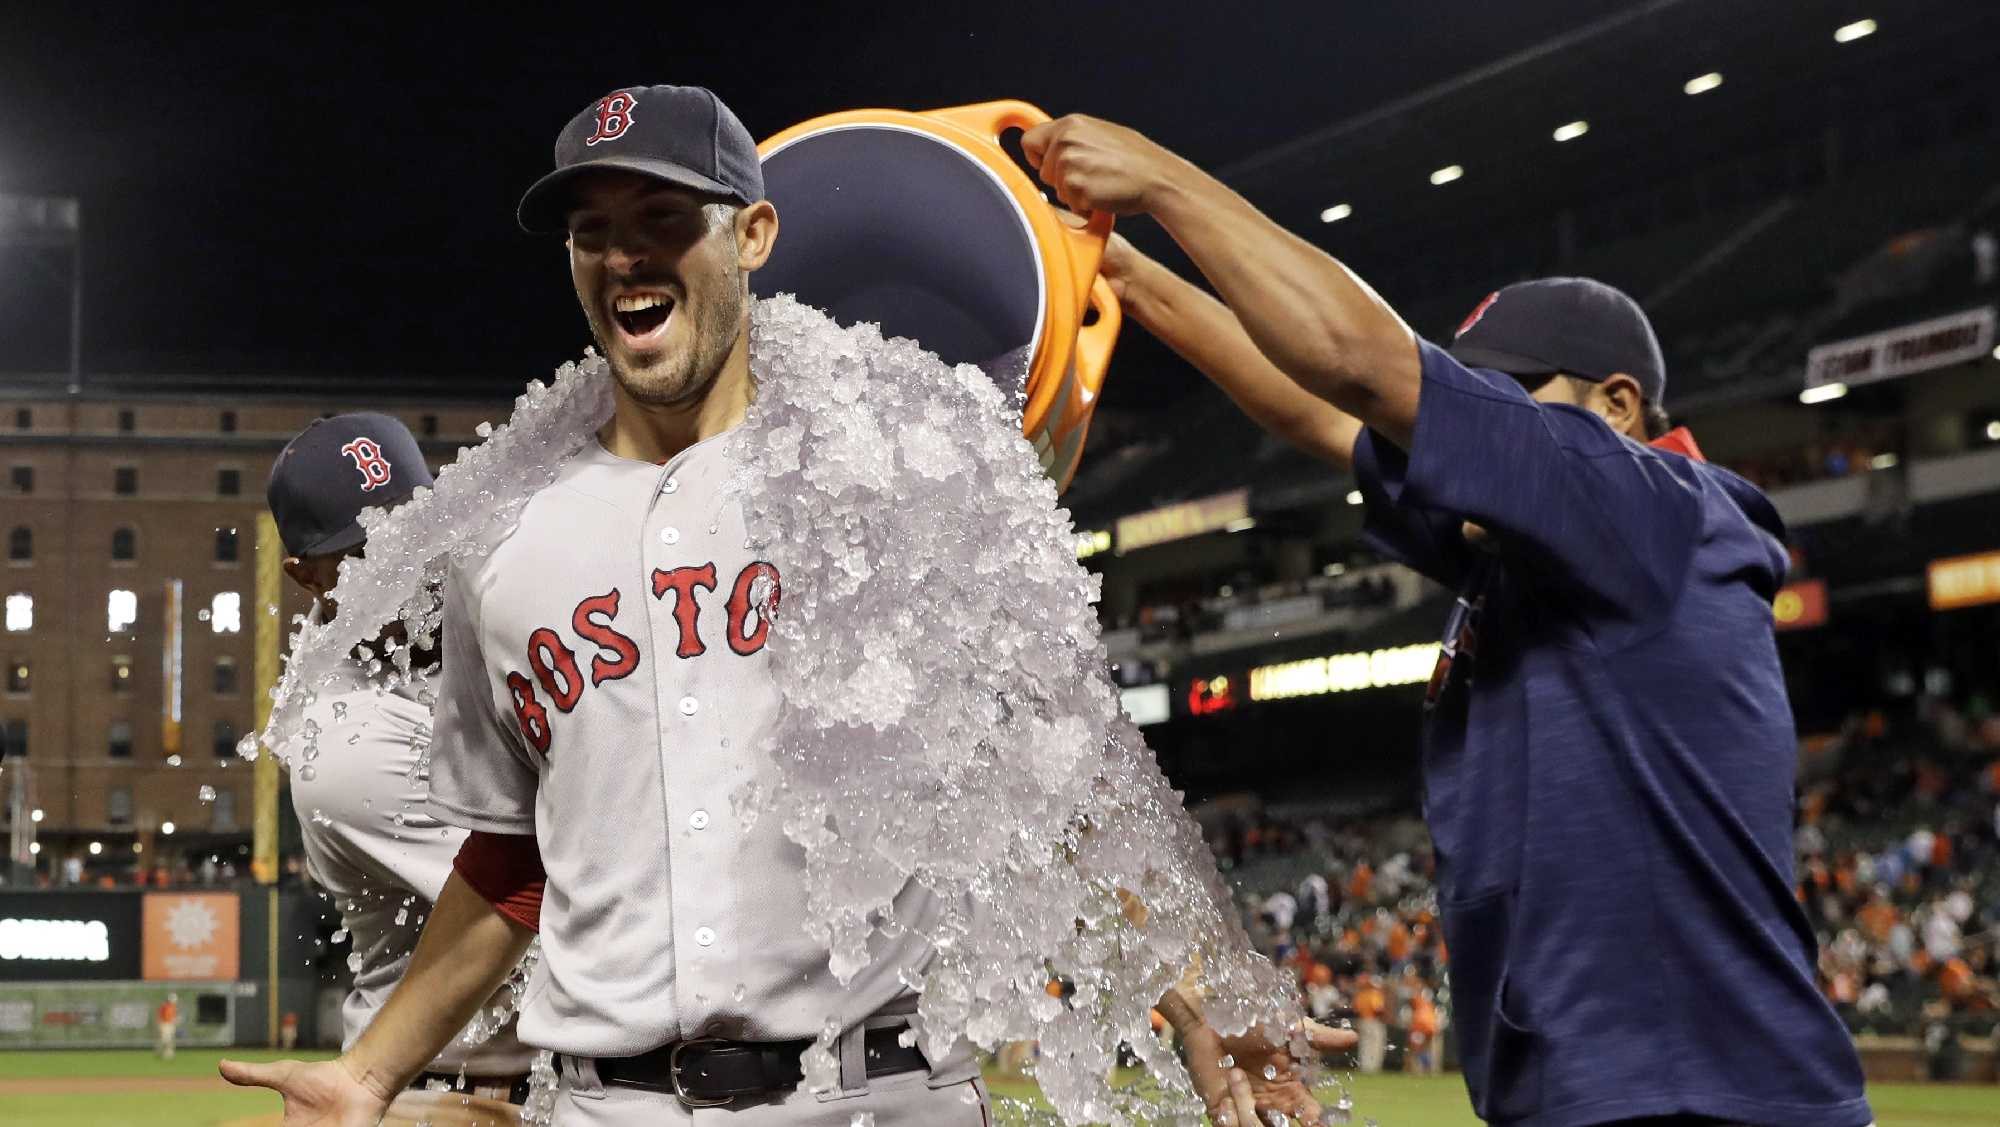 He's been one of the best pitchers in baseball, but most fans probably don't know who Rick Porcello is.